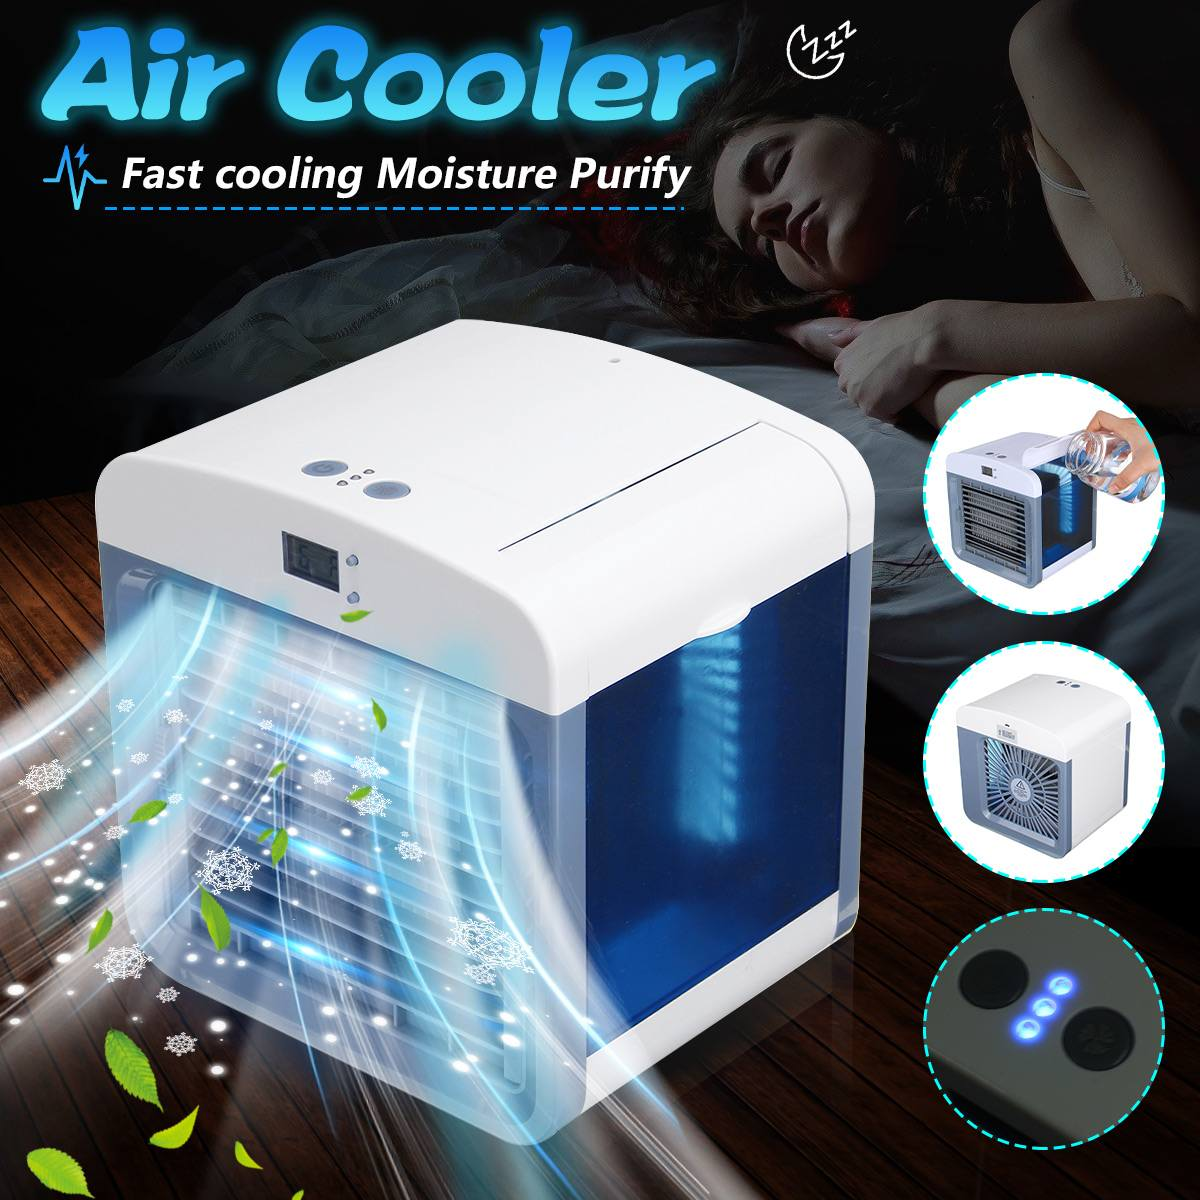 USB Portable Mini Air Cooler Cool Cooling Fan Purify Humidifier W/ Time Display White 16.5x13.5x16.5cm Low Energy ConsumptionUSB Portable Mini Air Cooler Cool Cooling Fan Purify Humidifier W/ Time Display White 16.5x13.5x16.5cm Low Energy Consumption